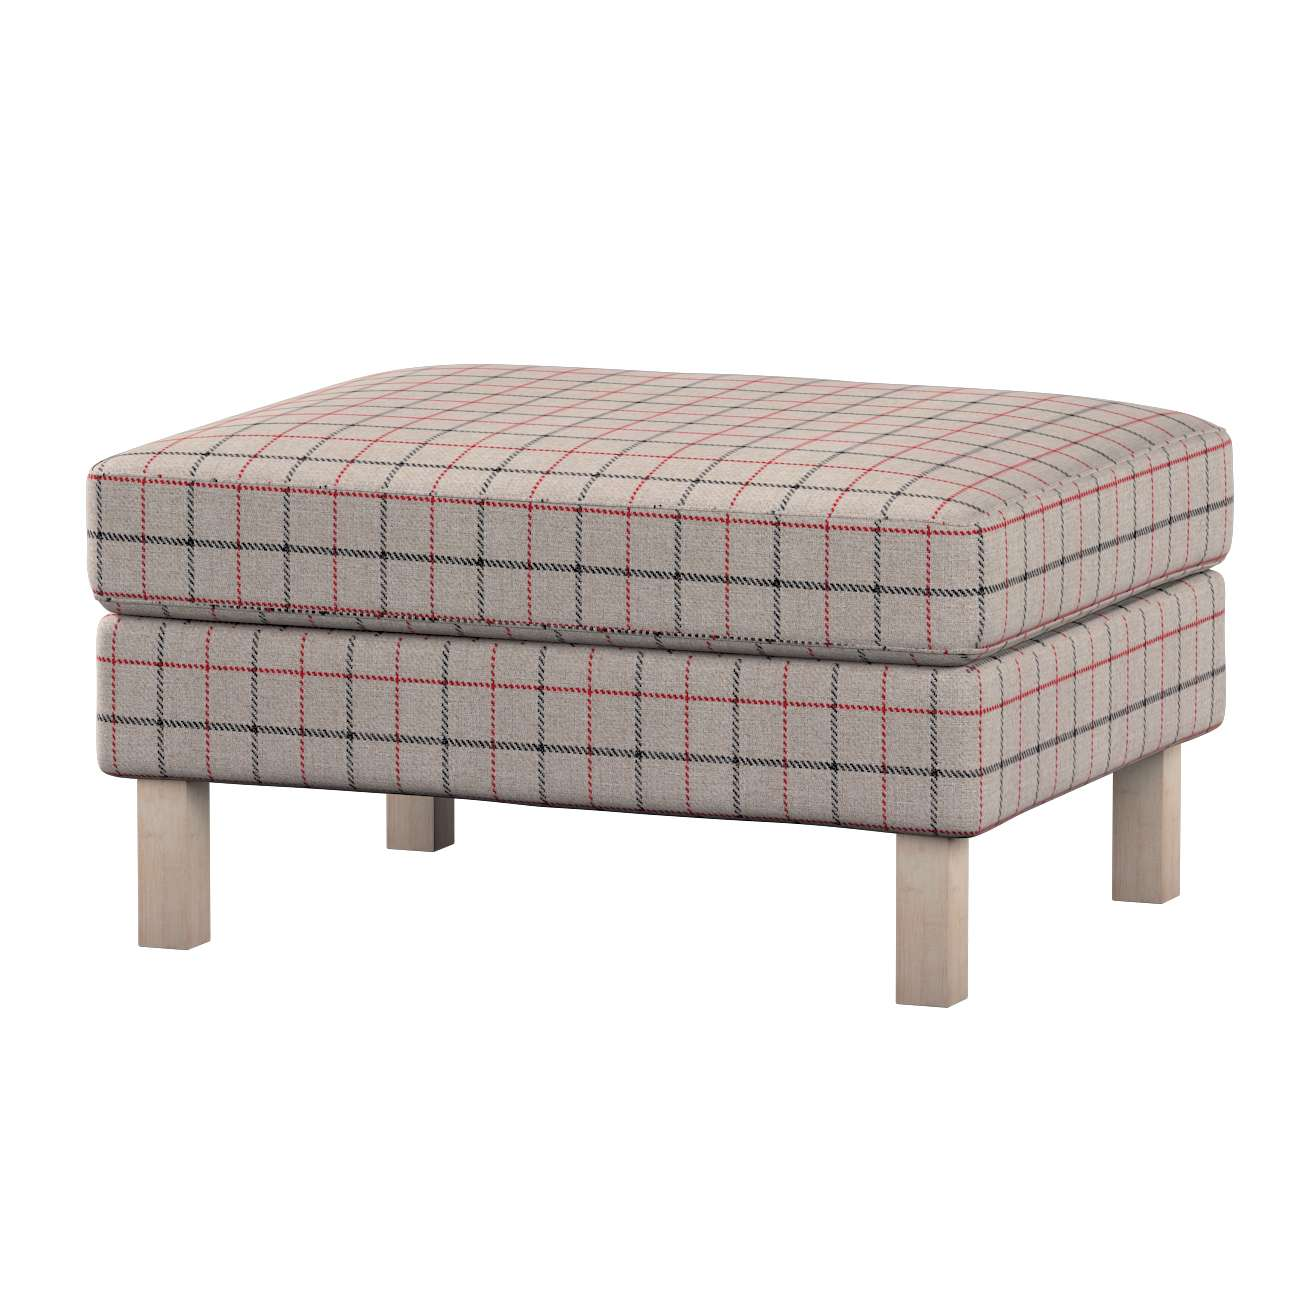 Karlstad footstool cover in collection Edinburgh, fabric: 703-13